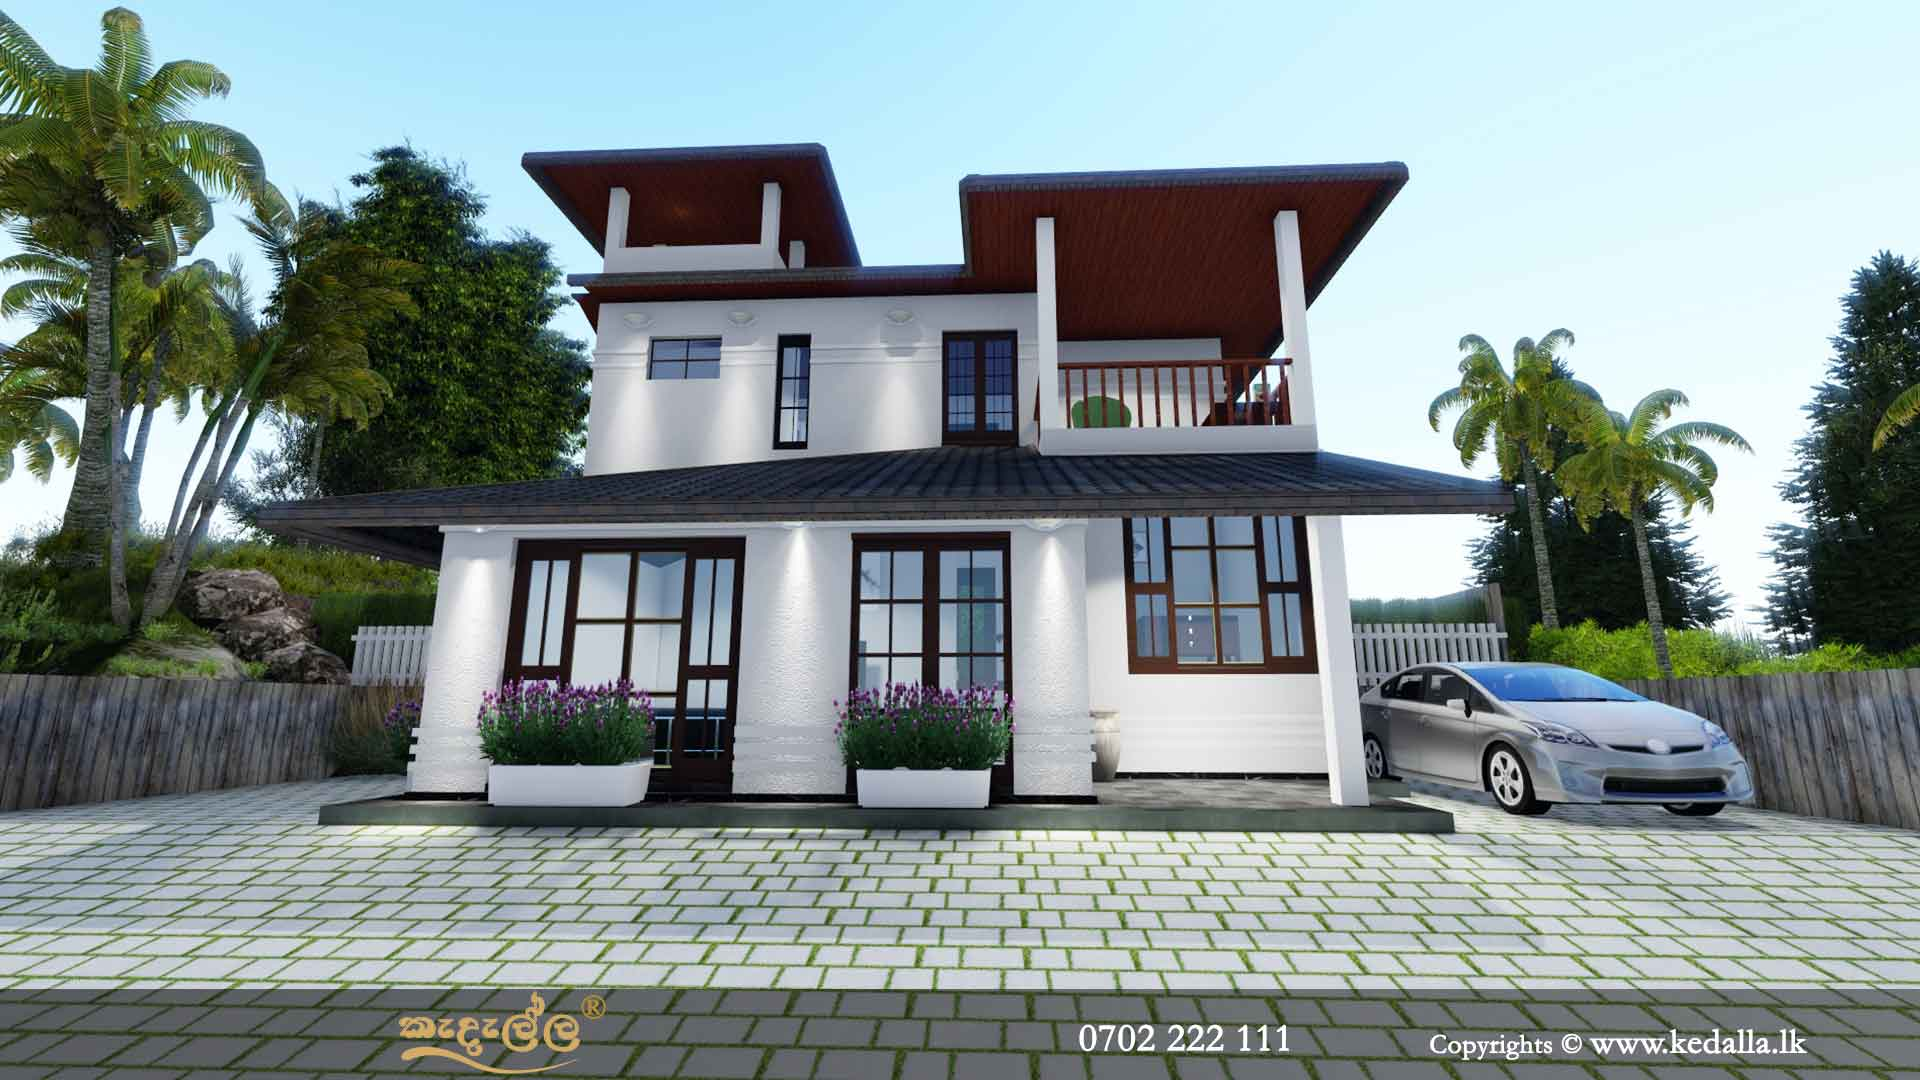 Leading architects in Kandy Sri Lanka designed classic two story house plan with large two balconies